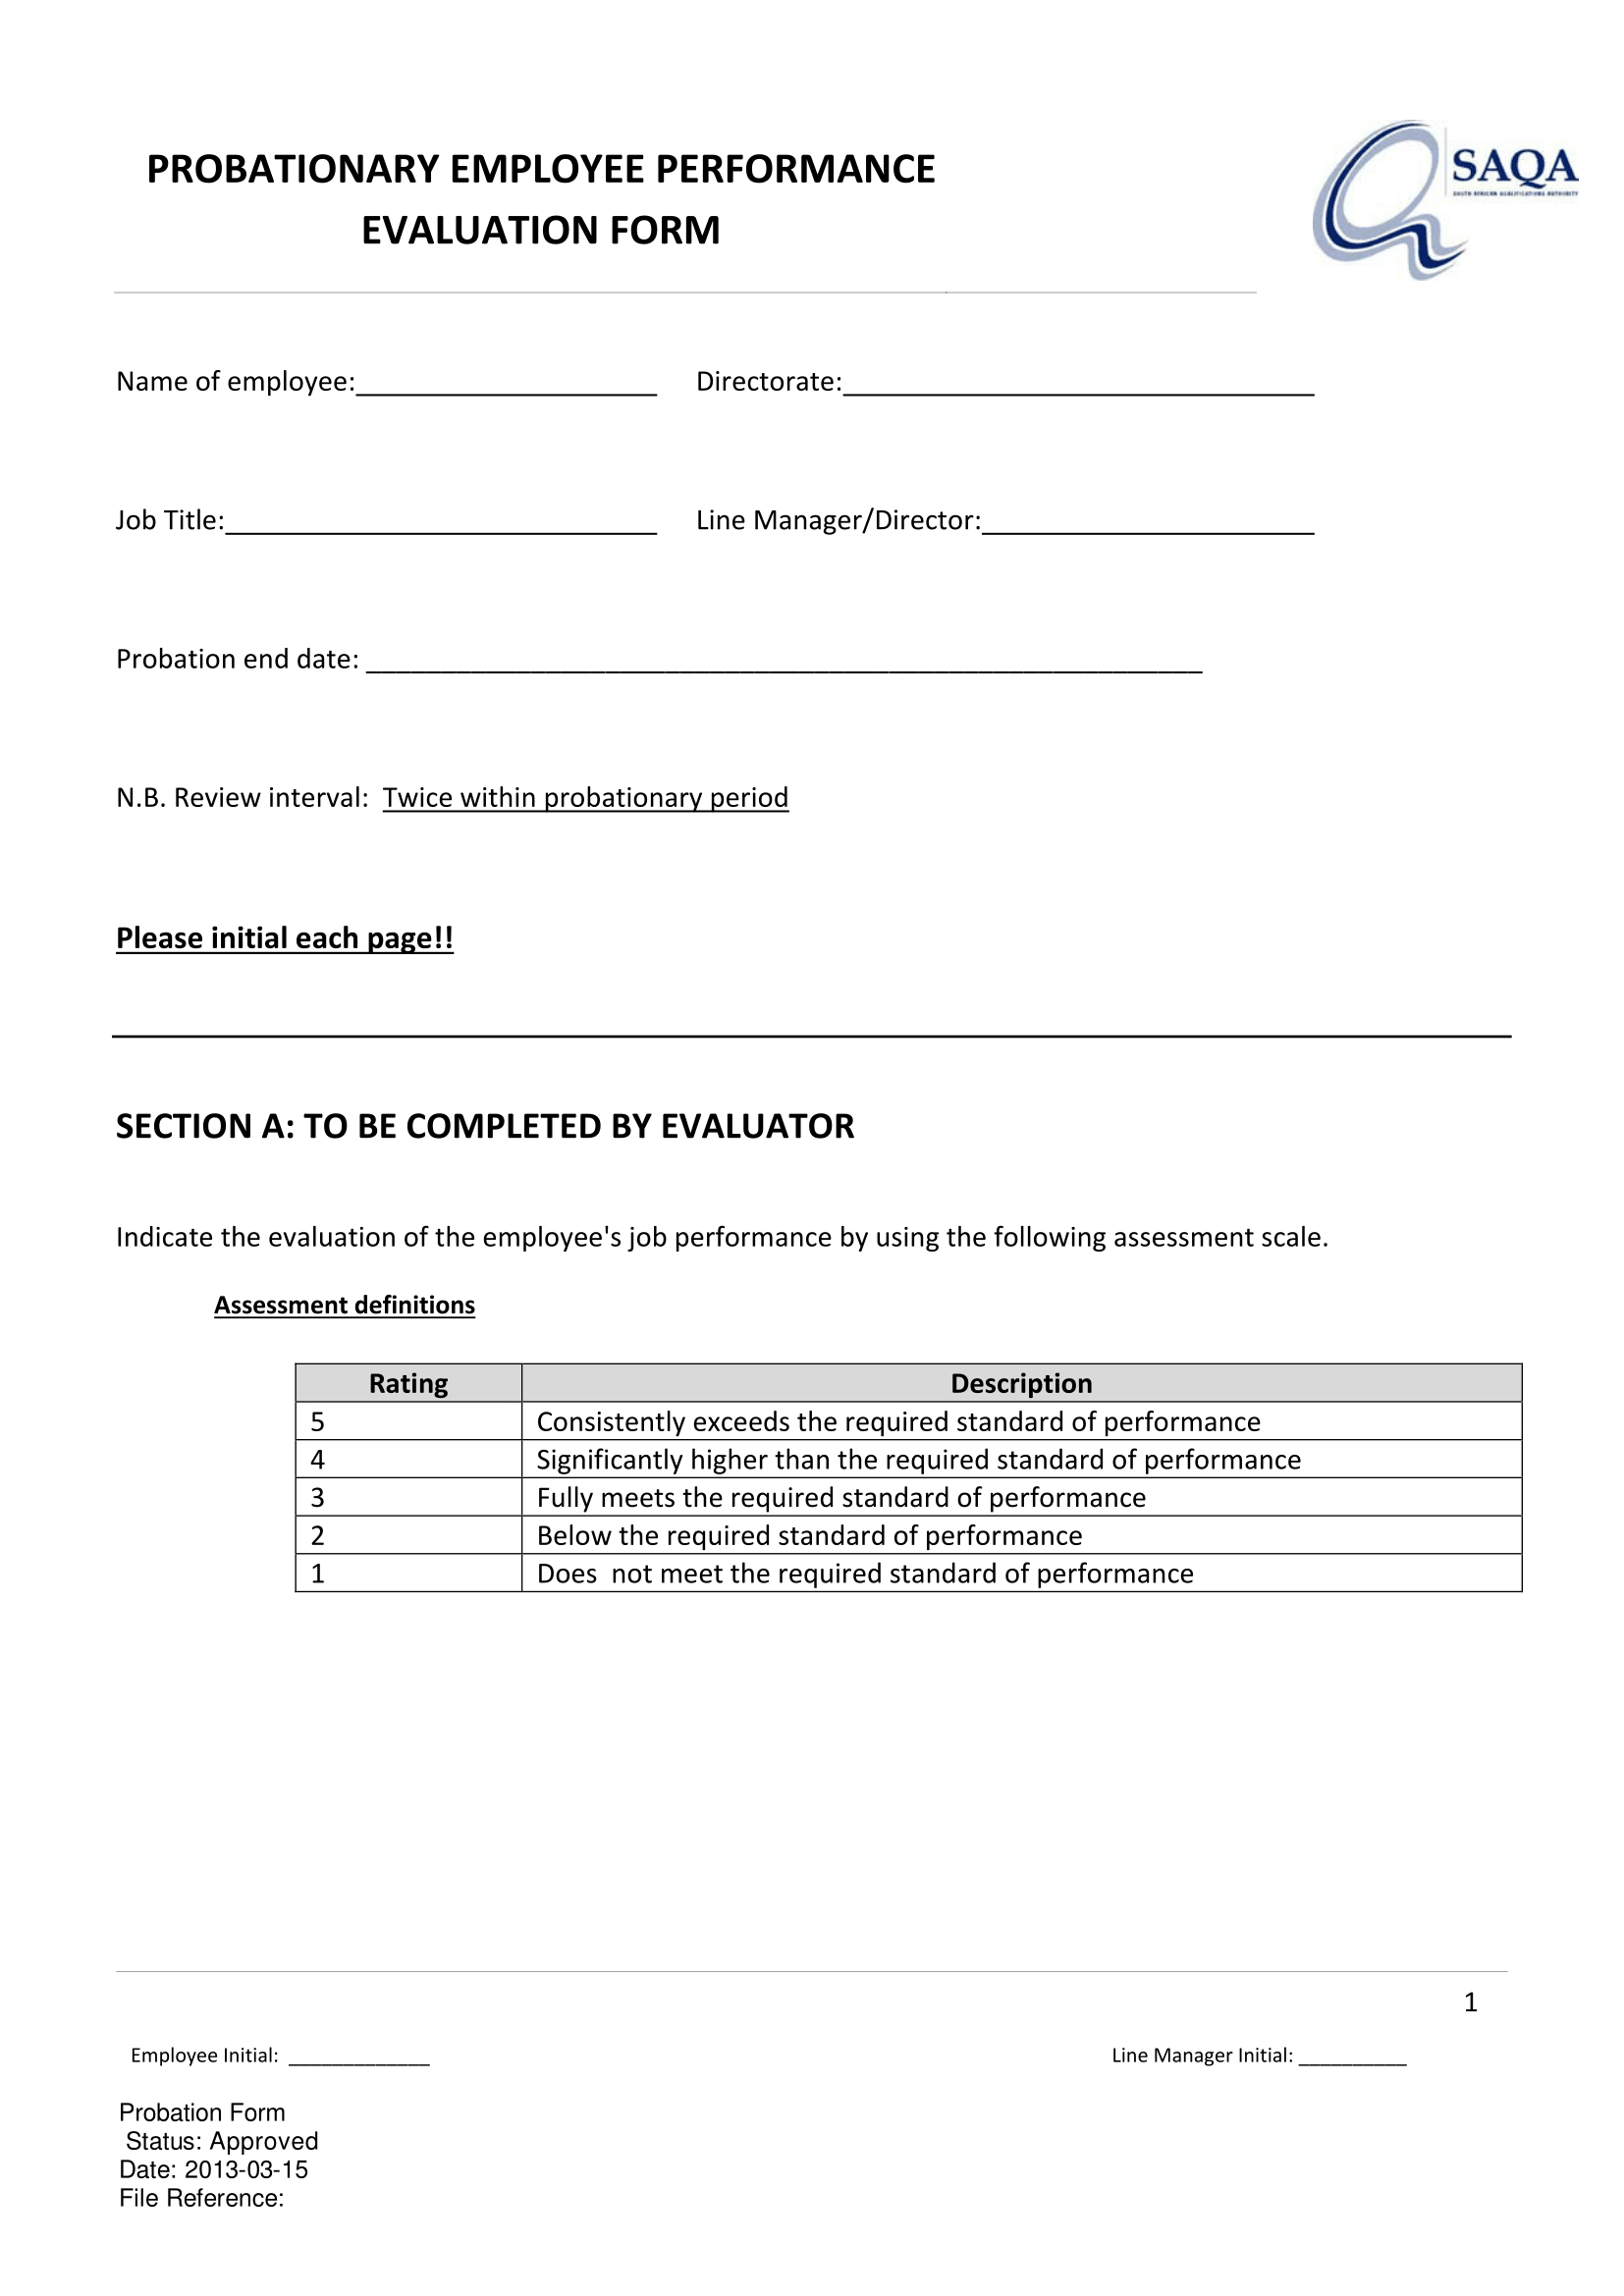 probationary employee performance evaluation form 1